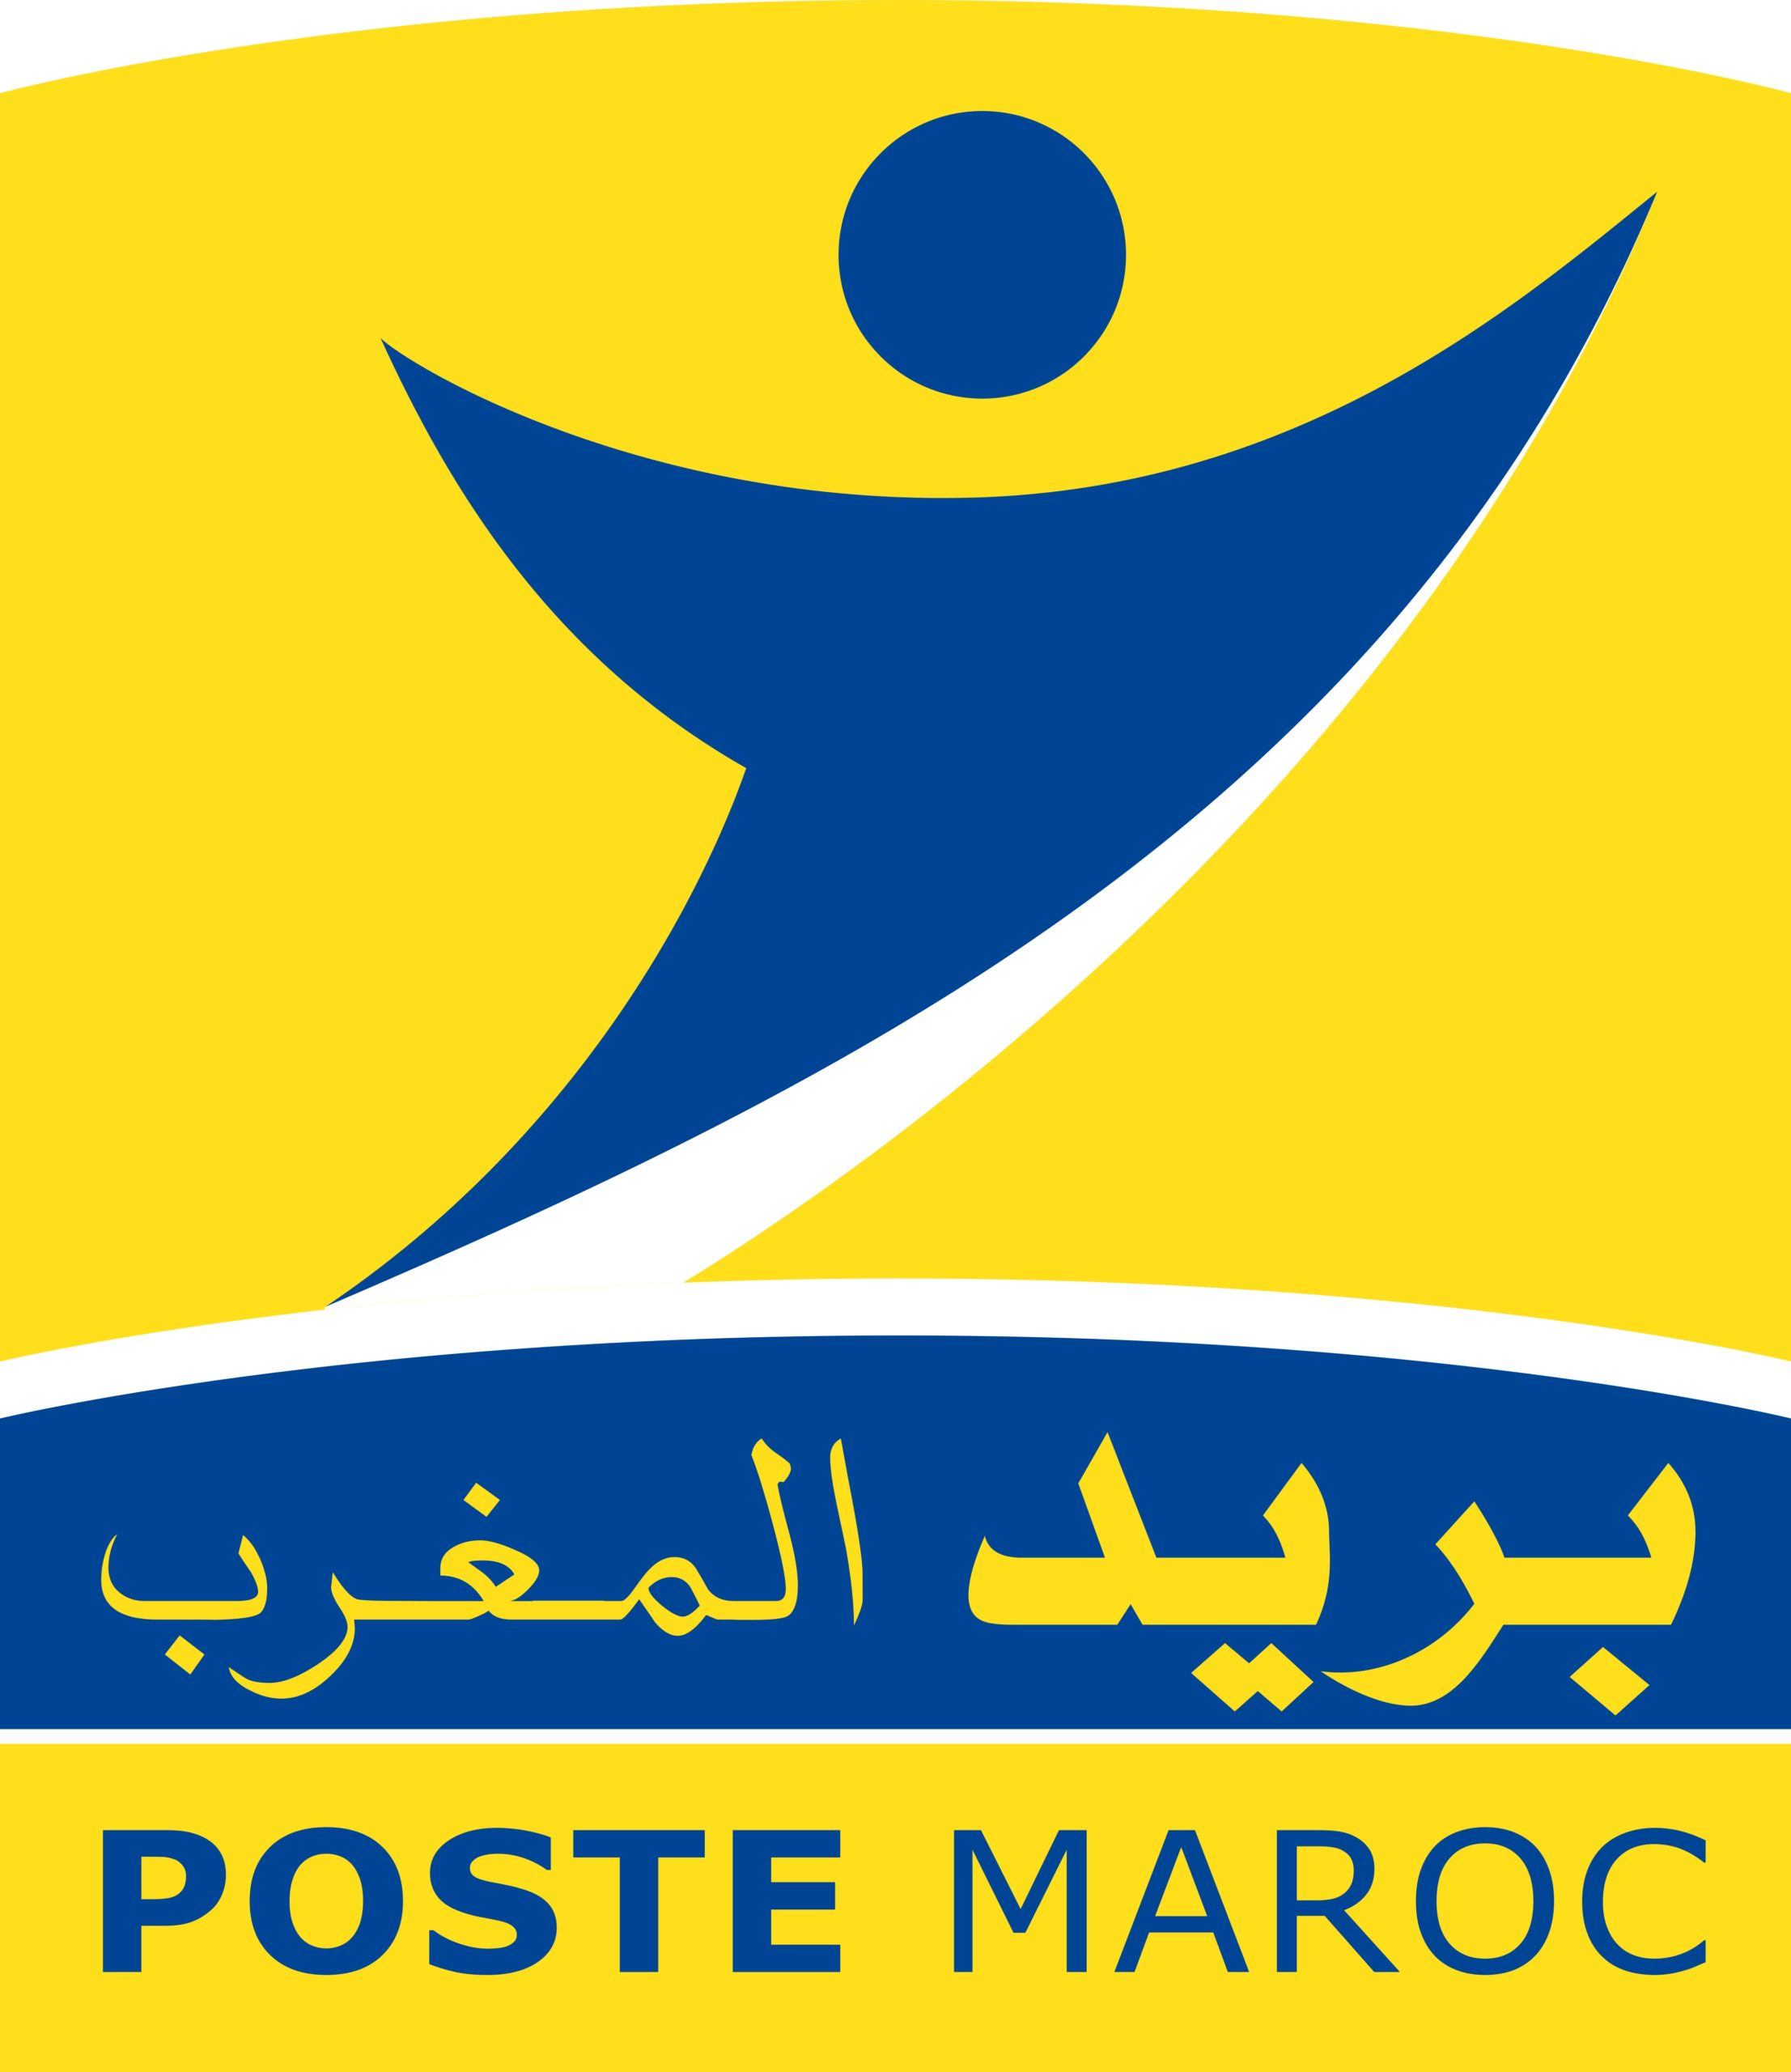 Poste Marocaine expedition colis